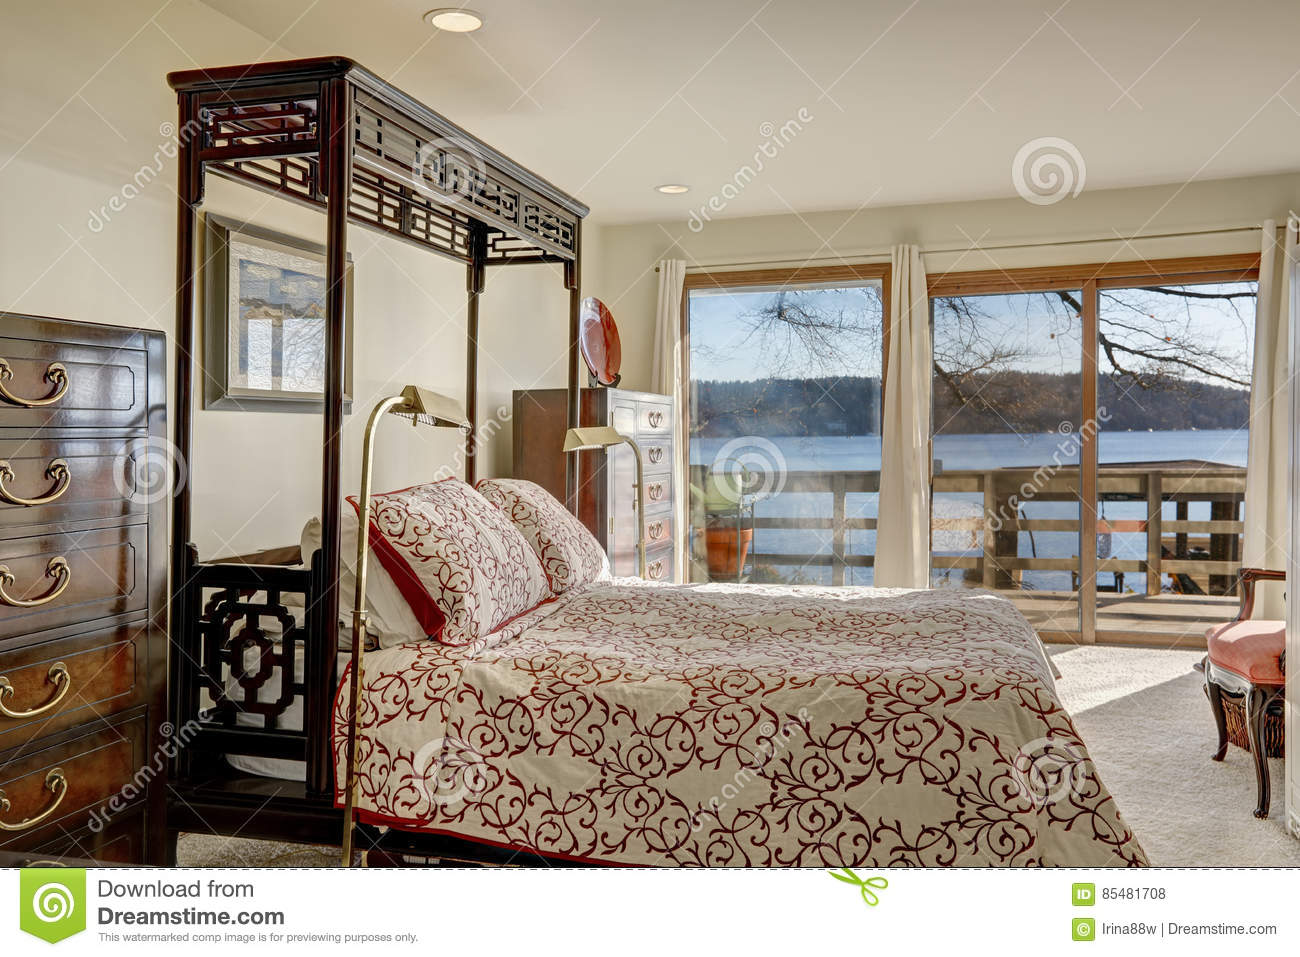 Picture of: Waterfront Home Bedroom Boasts King Size Canopy Bed Stock Photo Image Of Northwest Floor 85481708